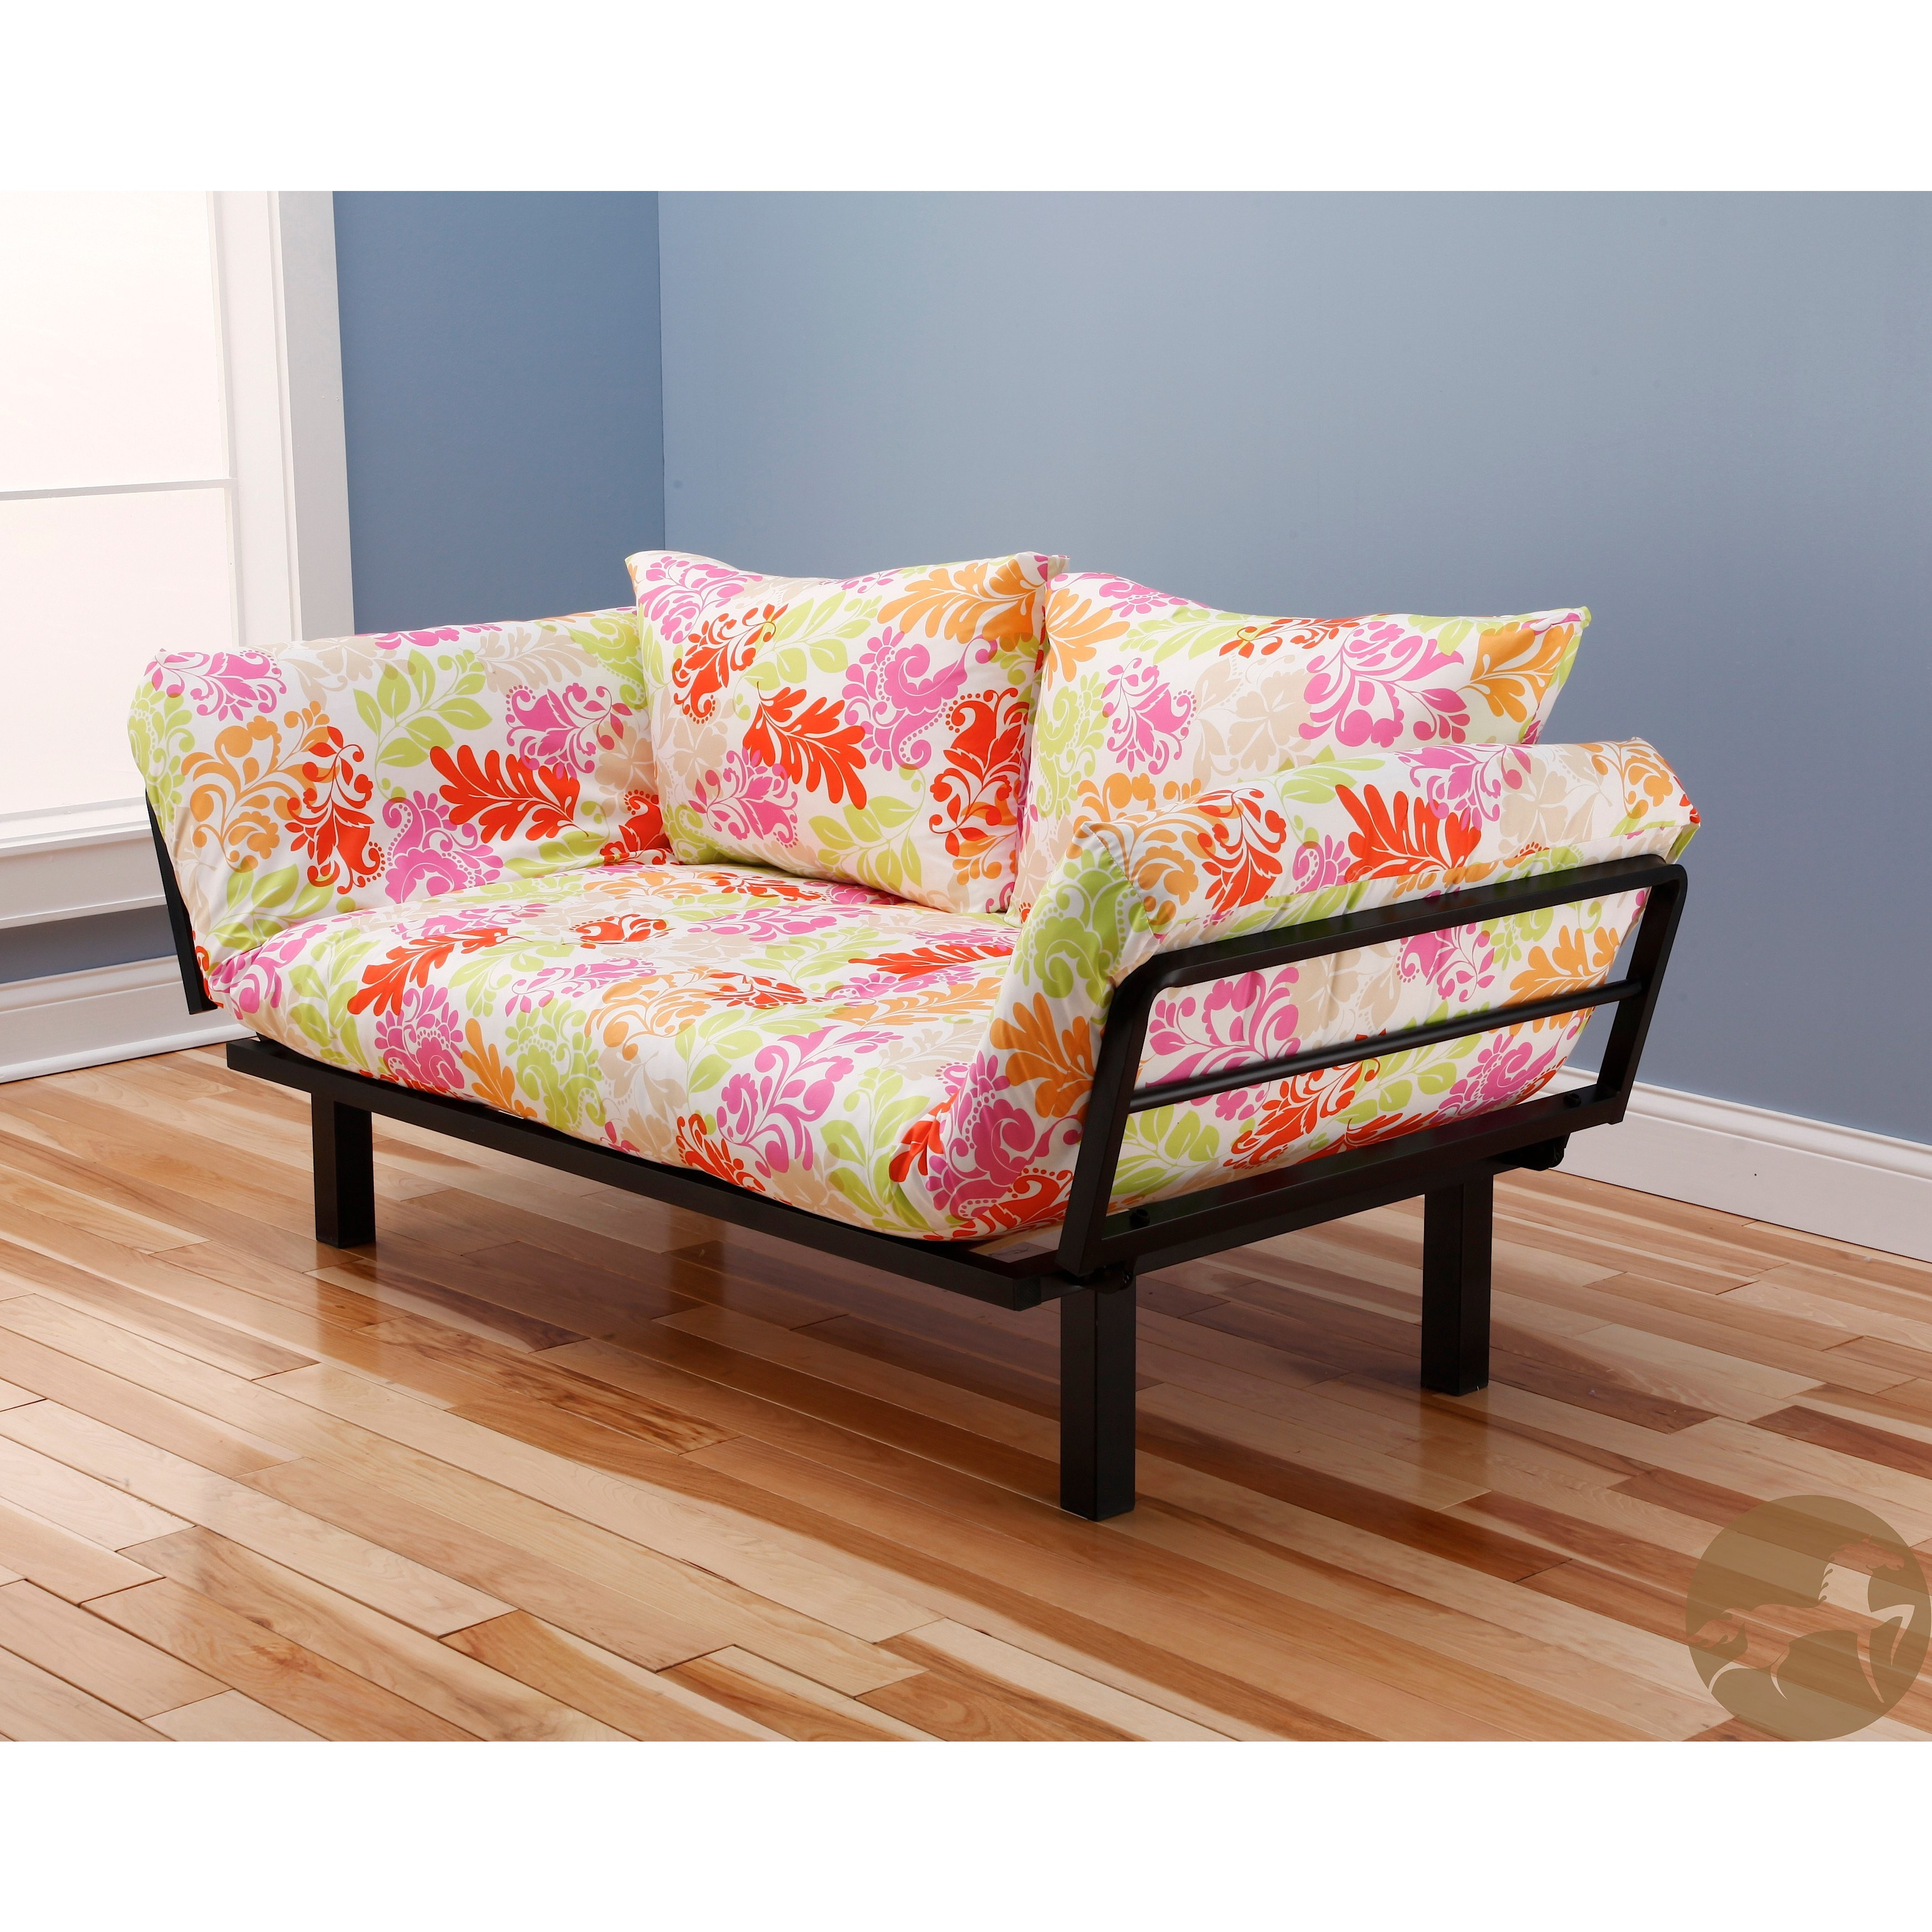 Christopher Knight Home Multi-Flex Black Metal Daybed/Lou...